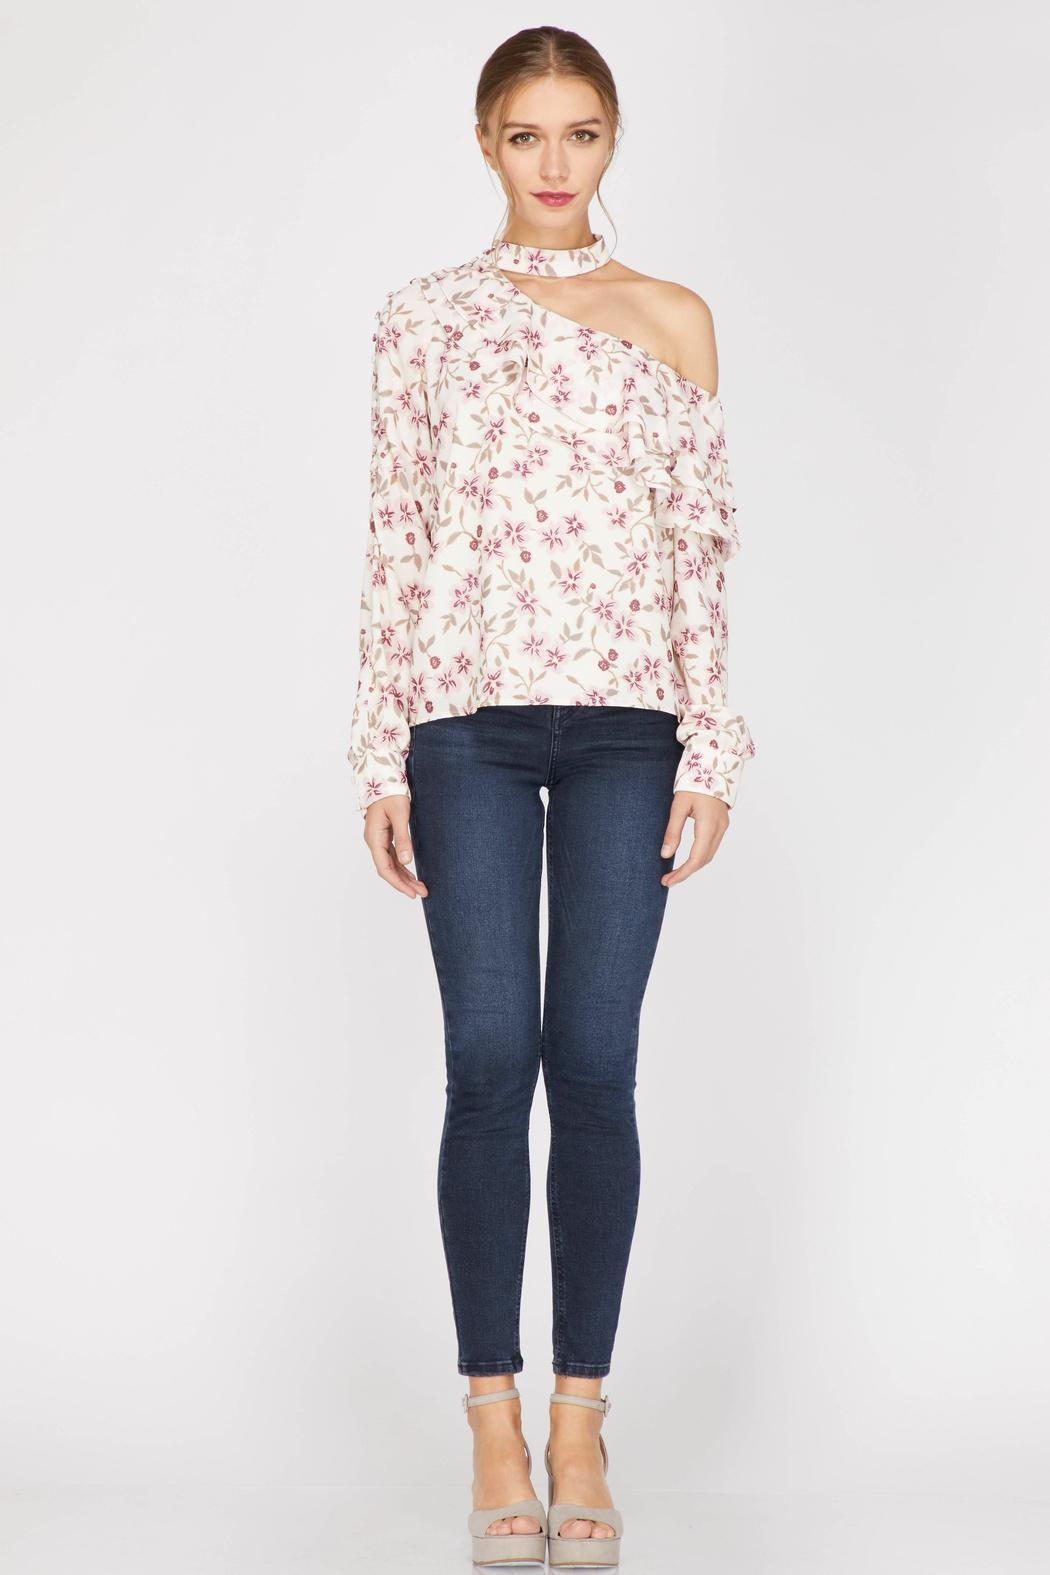 Adelyn Rae Patyon One-Shoulder Blouse - Main Image